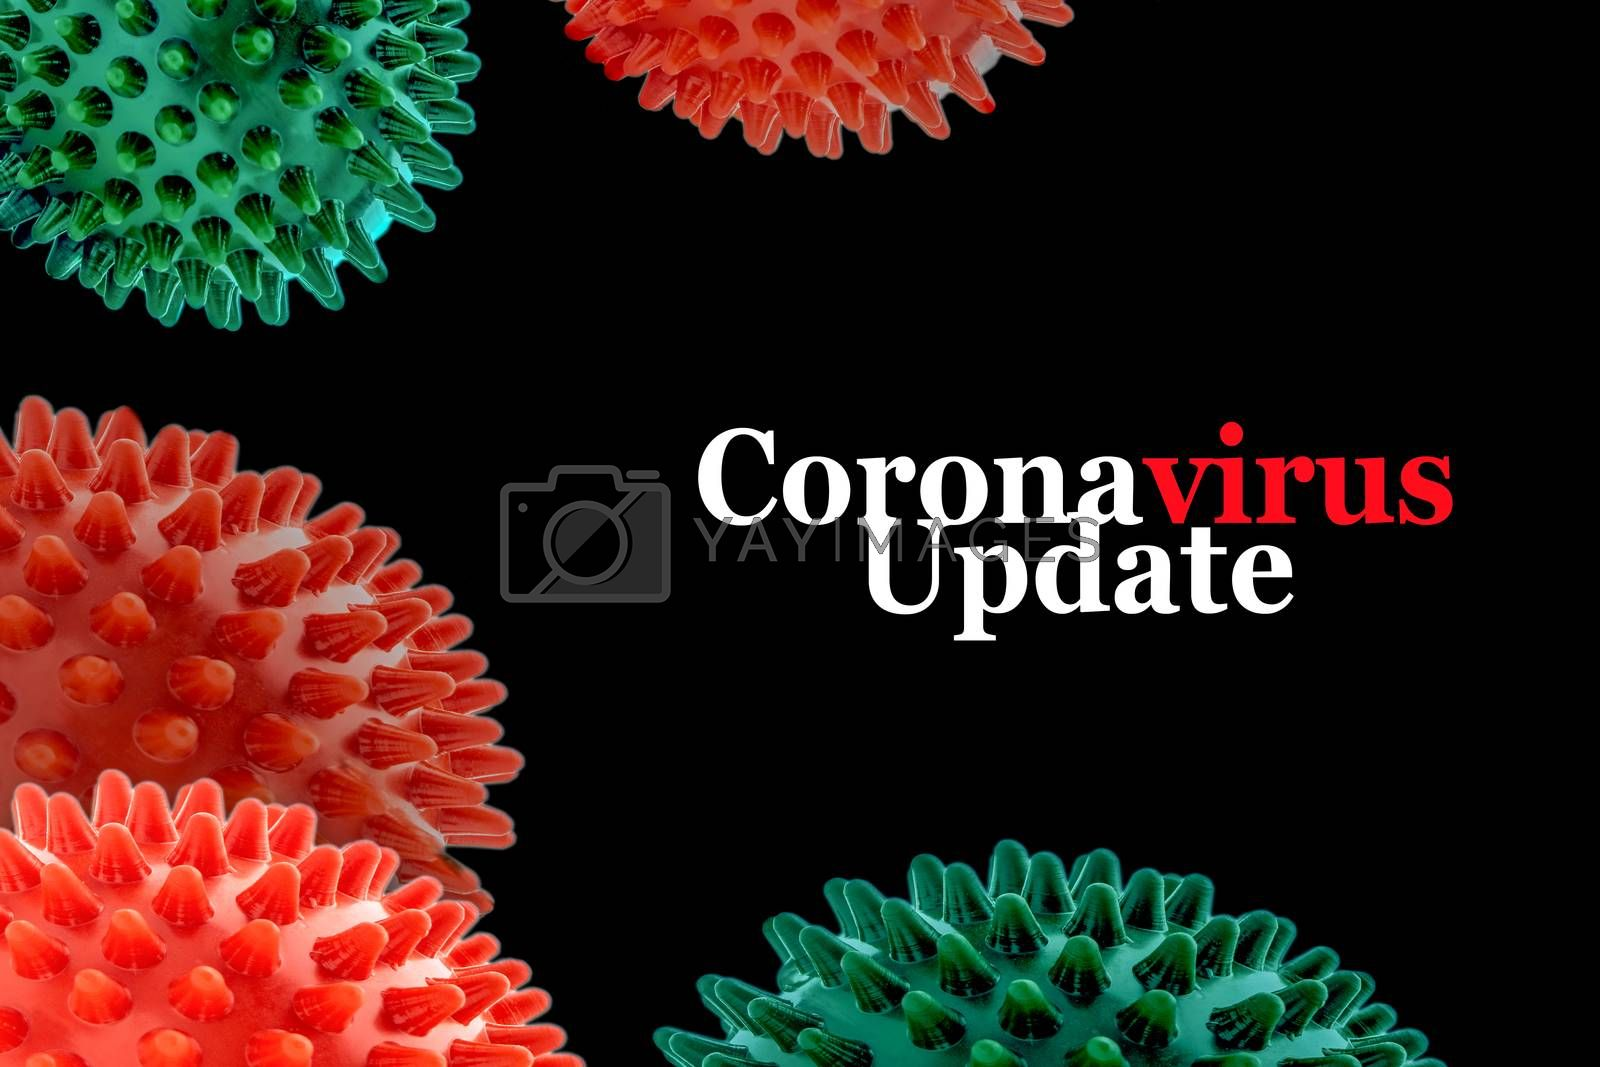 CORONAVIRUS UPDATE text on black background. Covid-19 or Coronavirus concept